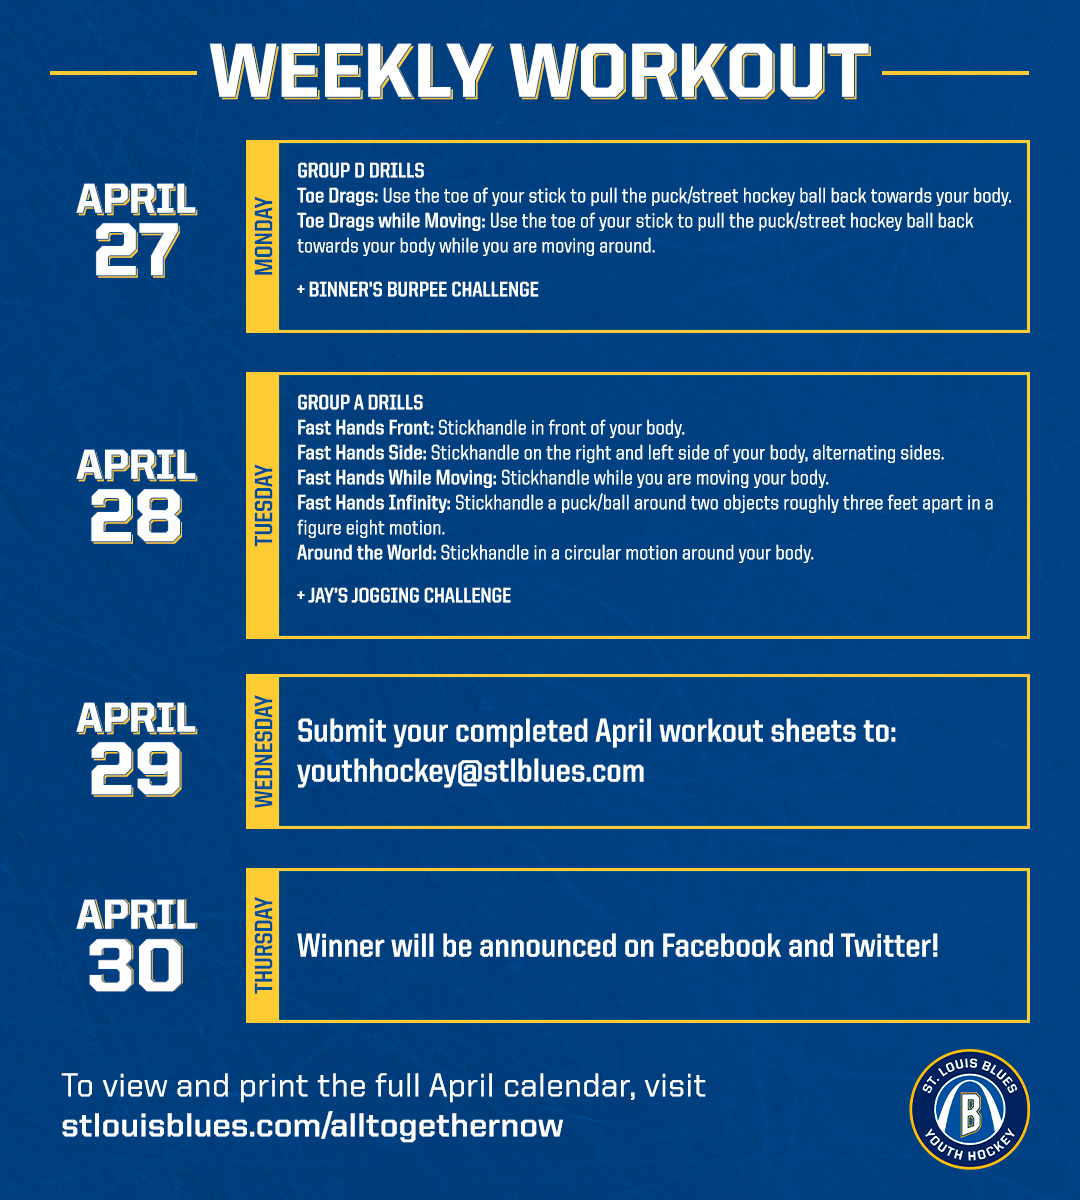 Time for the final week of the #HockeyNeverStops challenge! Finish strong and don't forget to submit your completed forms to youthhockey@stlblues.com on Wednesday! https://t.co/HhjBrI32y8